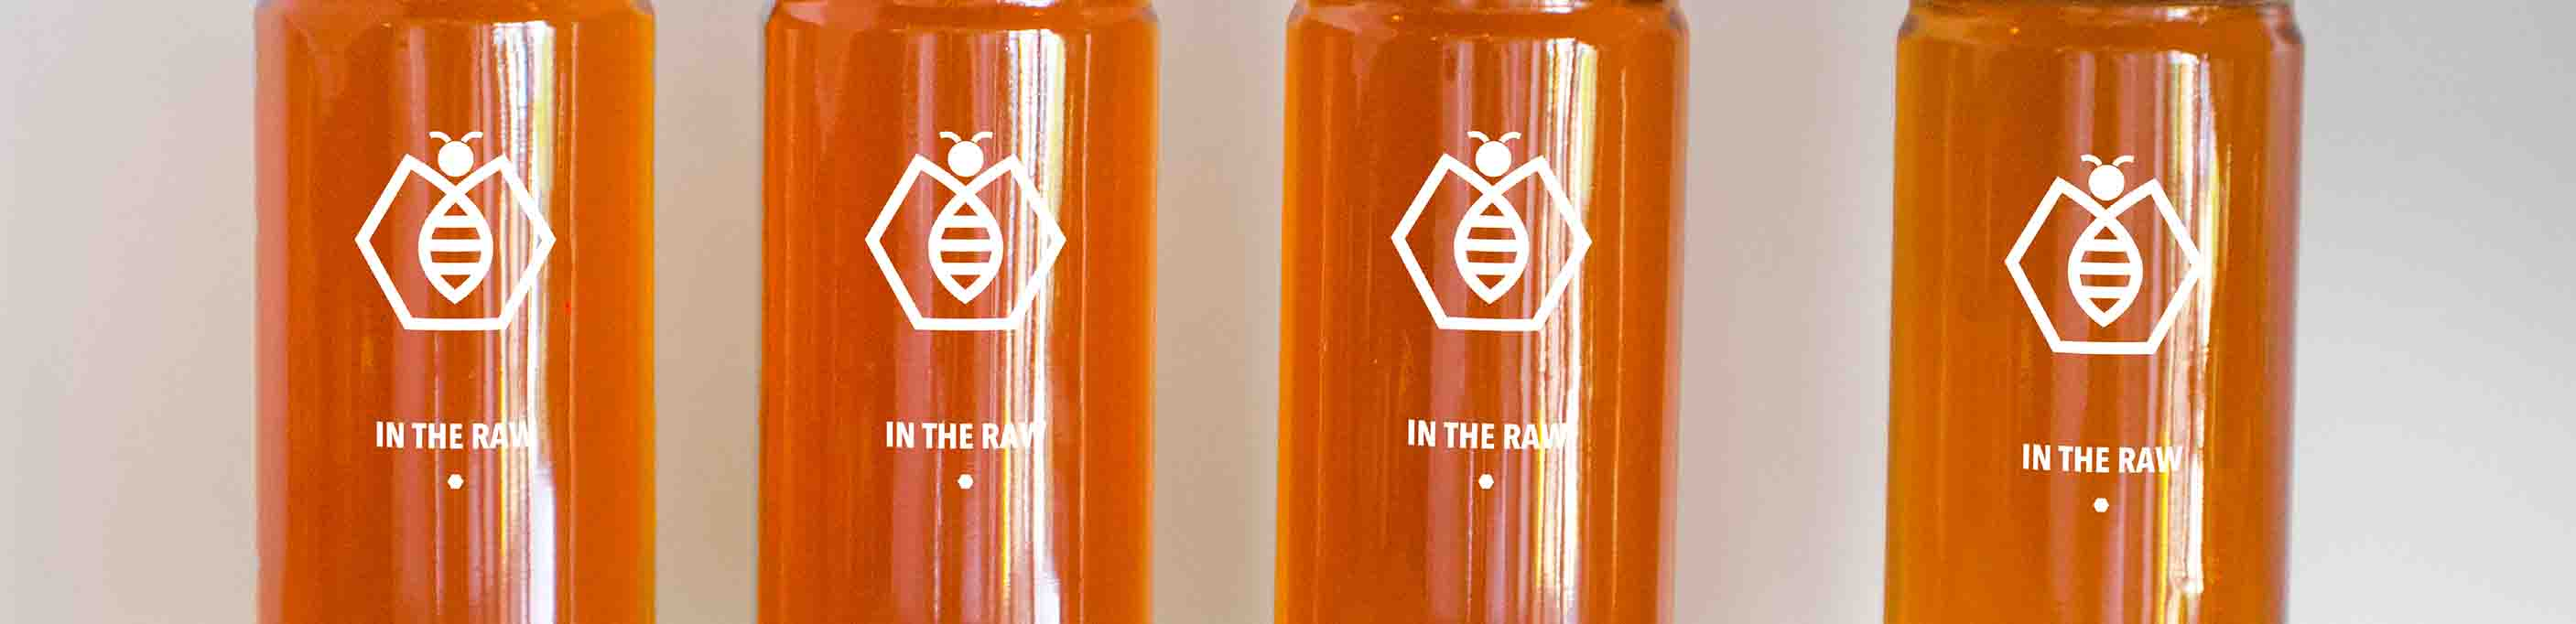 Tall and Slim Honey Jars - Oblong